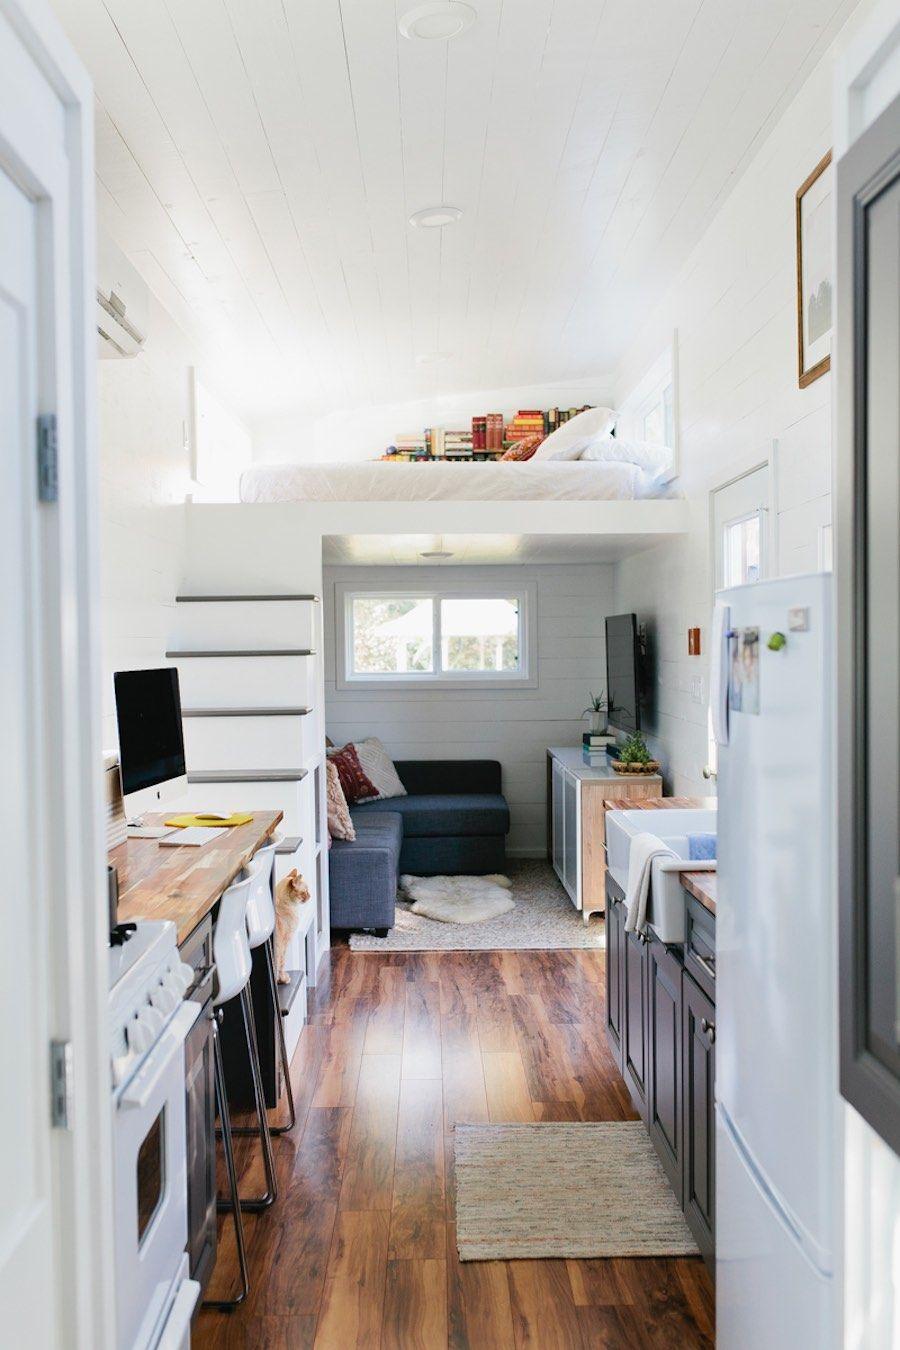 5 tiny houses we loved this week: from a \'Craftsman\' stunner to a ...